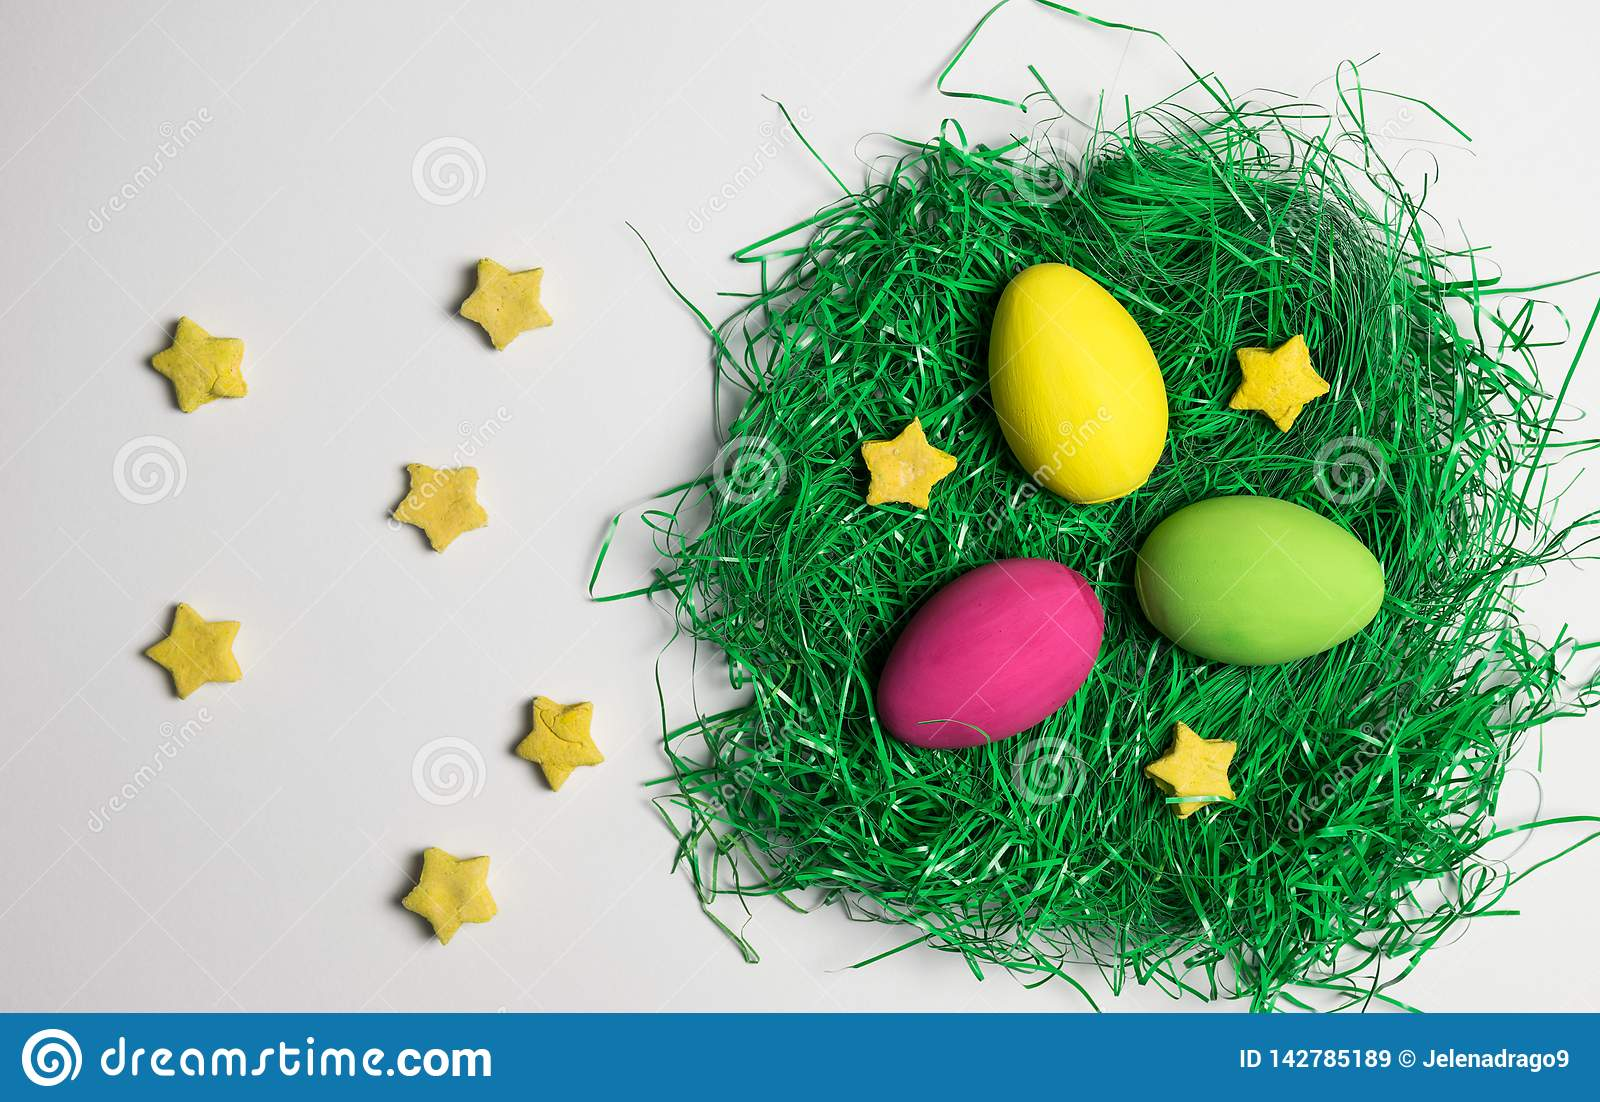 Yellow, green and pink Easter egg in nest of artificial green grass with yellow decorative stars all over white background.